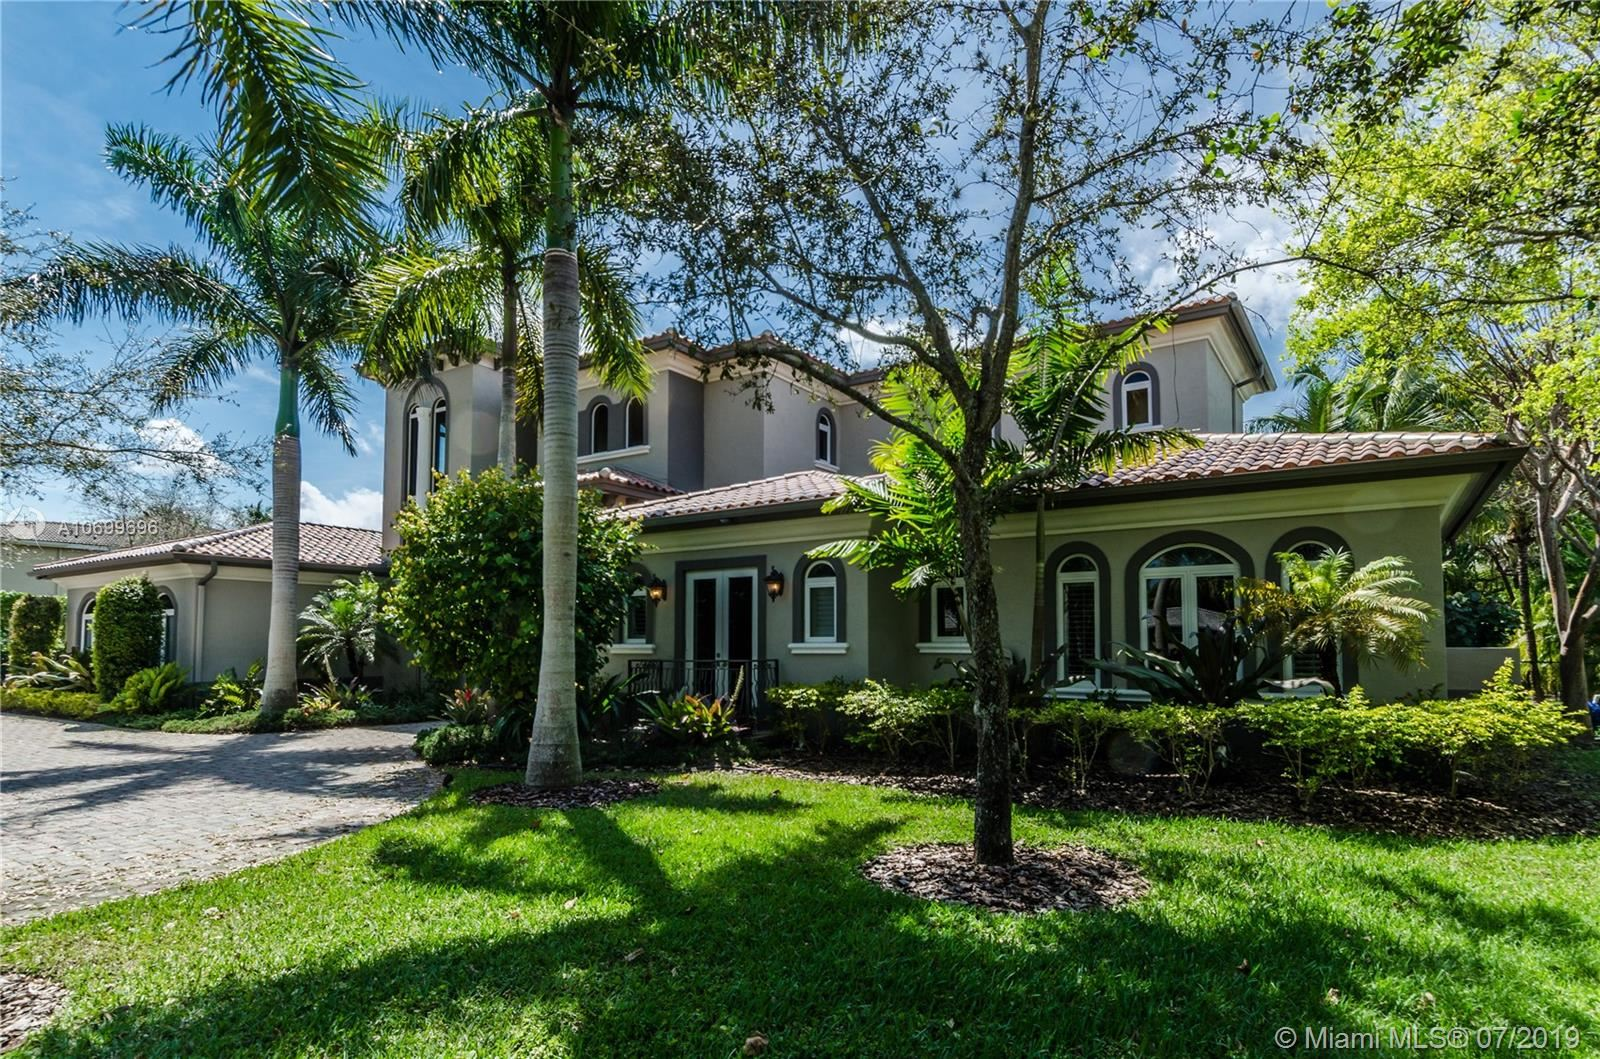 10300 SW 72nd Ave, Pinecrest, FL 33156 - #: A10699696